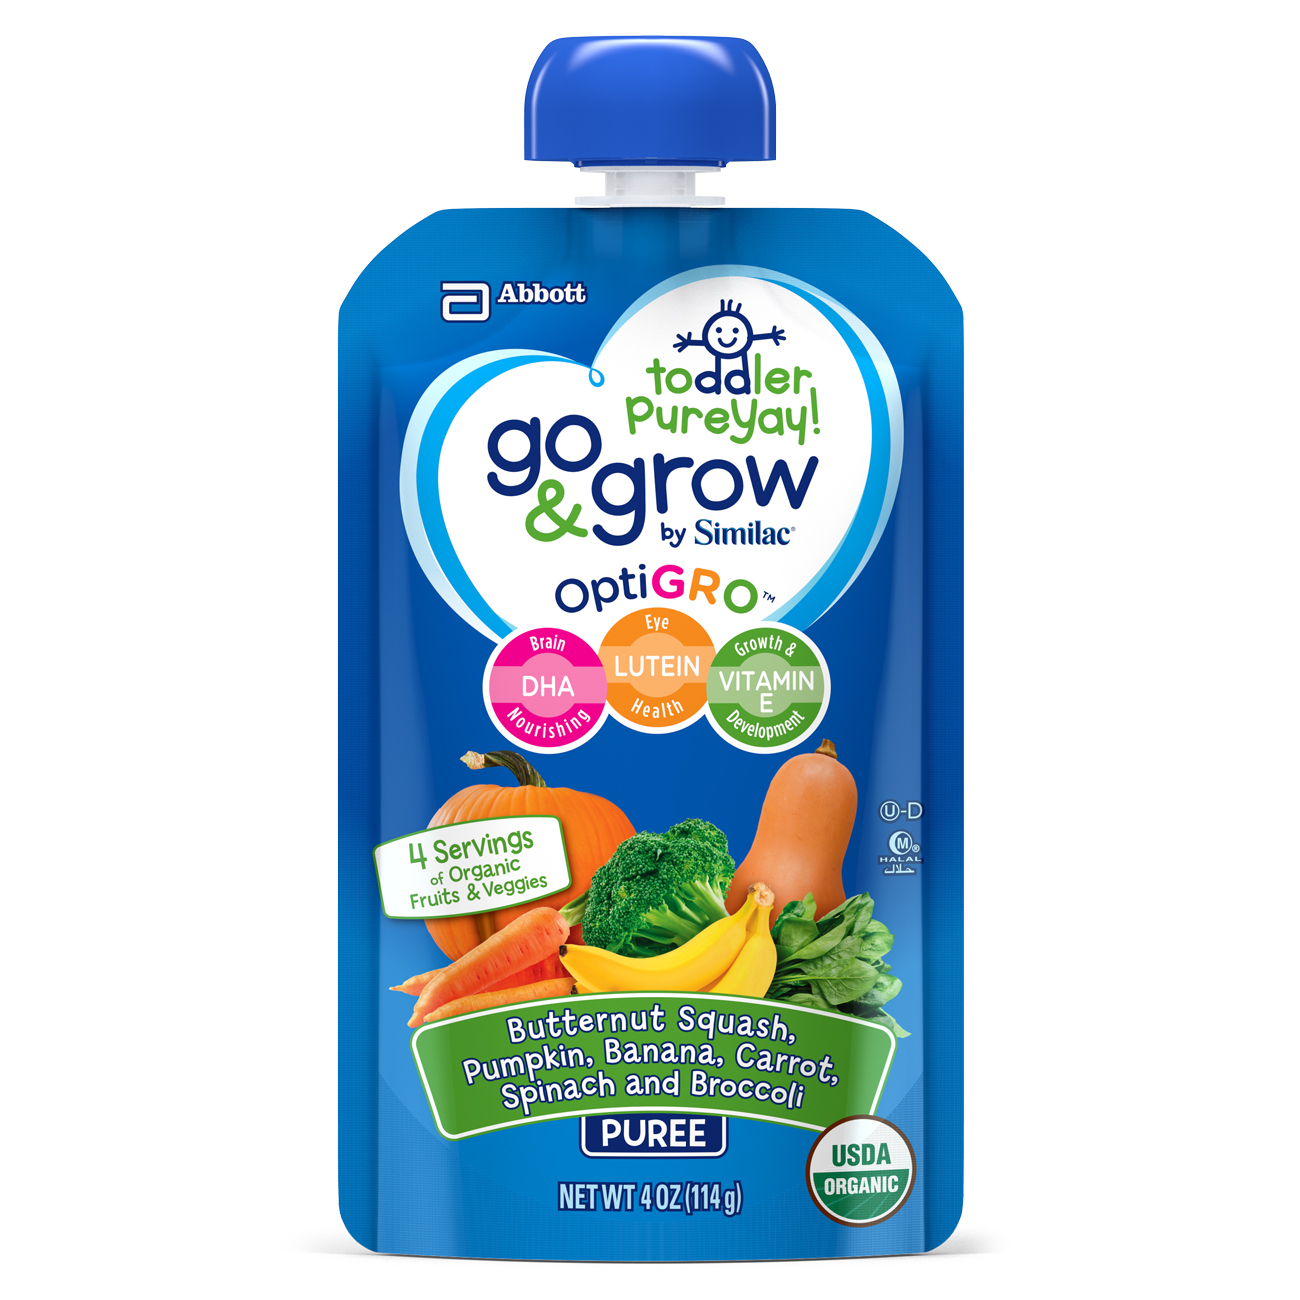 Go & Grow by Similac Fruit and Veggie Pouches with OptiGRO™, Butternut Squash, Pumpkin, Banana, Carrot, Spinach, Broccoli Puree, For Toddlers, Organic Baby Food, 4 ounces